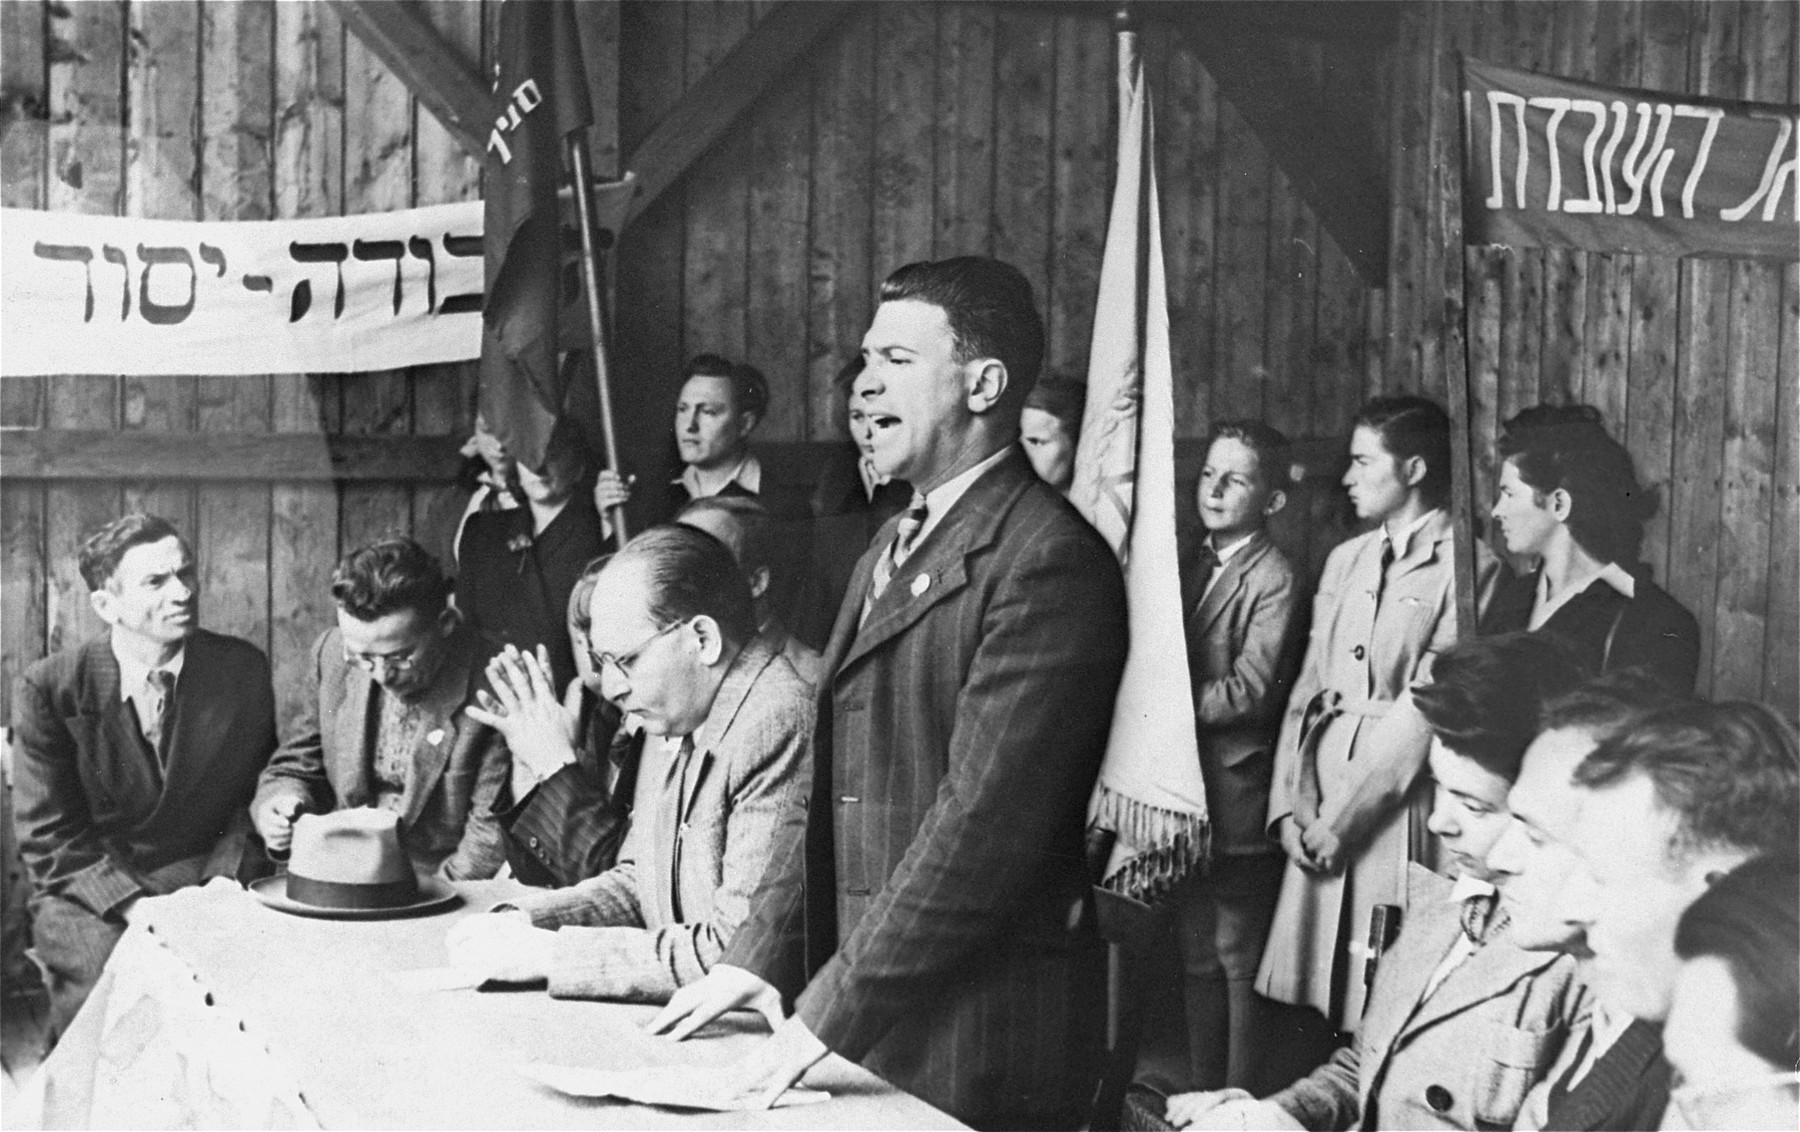 A DP spokesman delivers a speech at a Zionist meeting in the Neu Freimann camp.